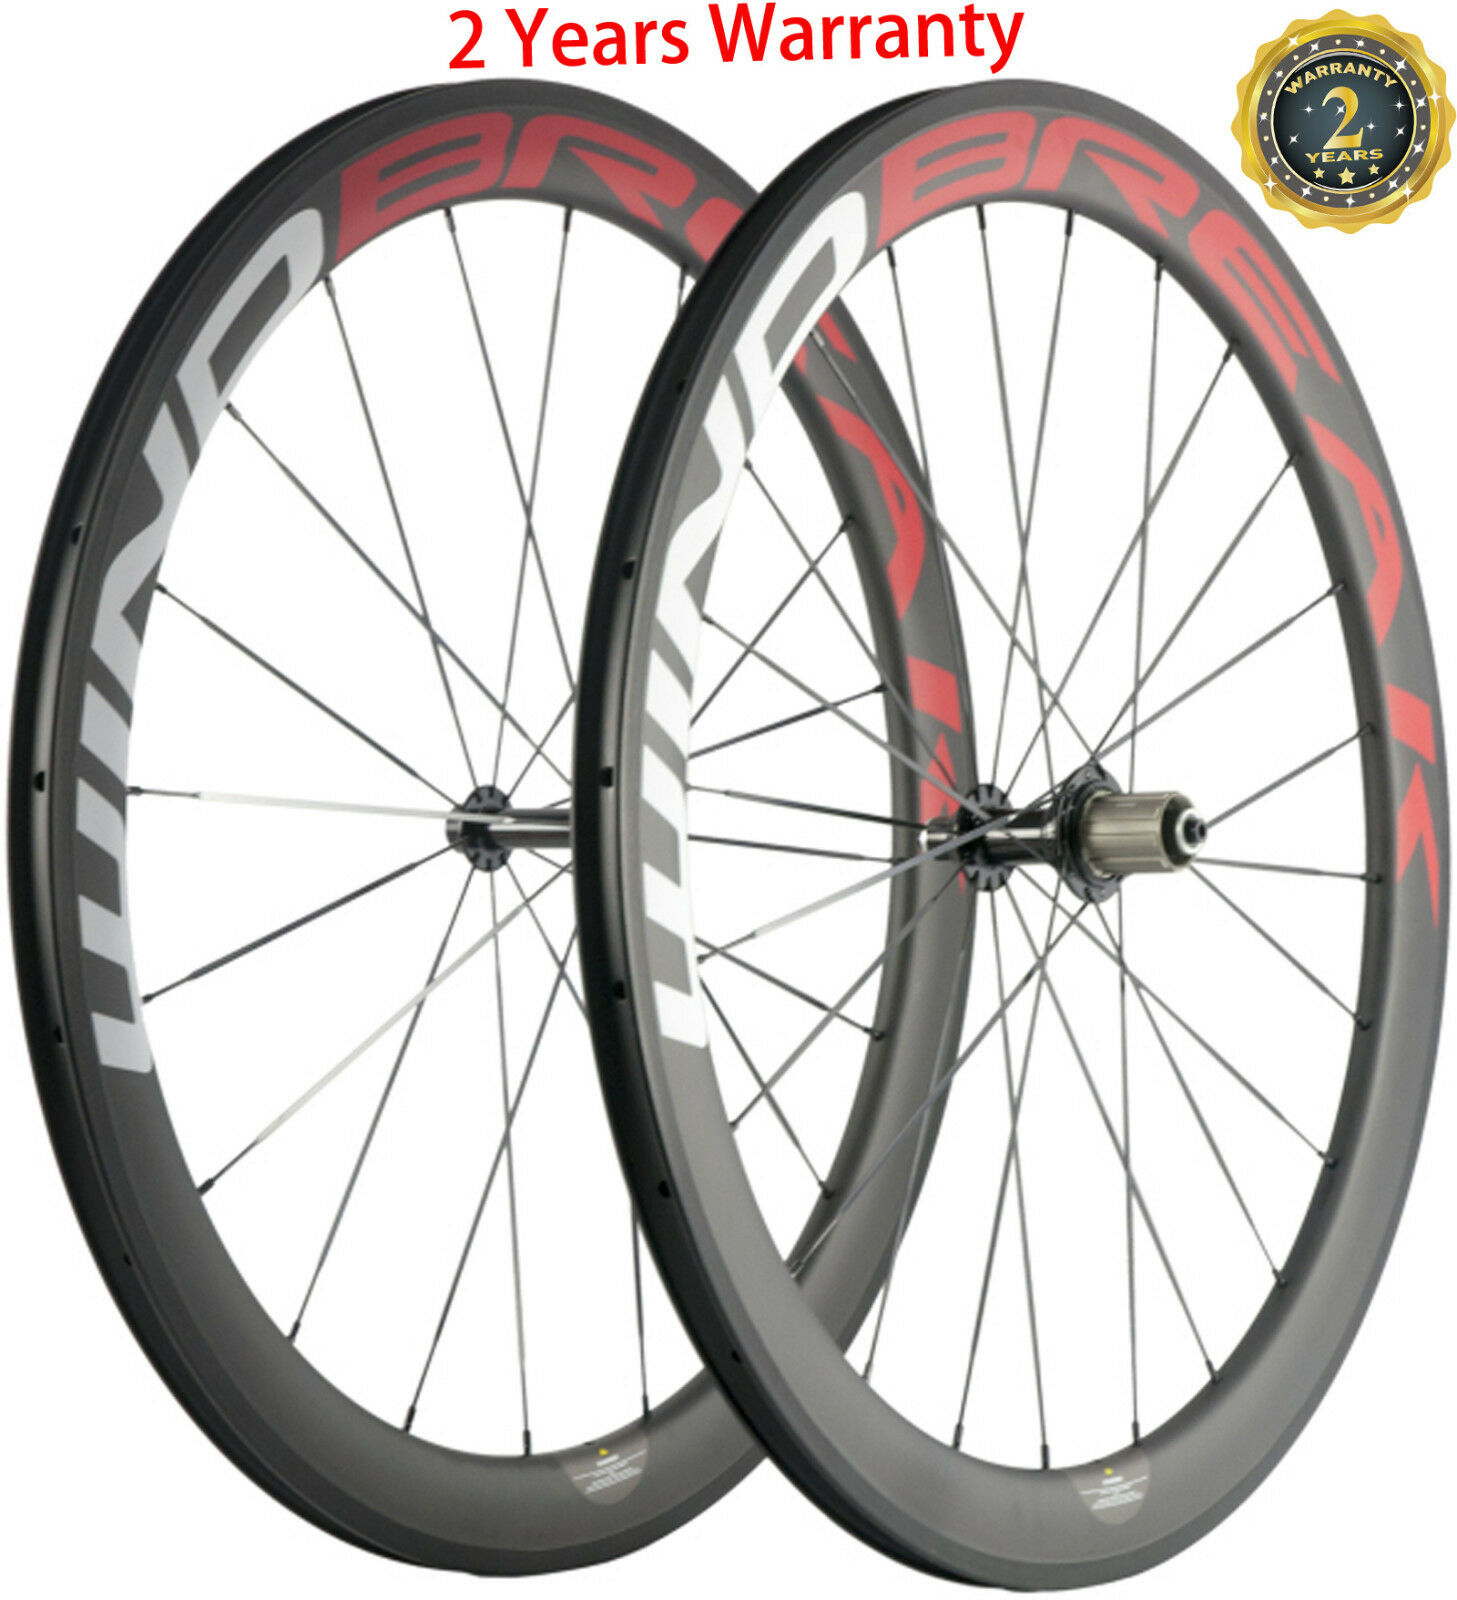 24 38 50 60 88mm Carbon Wheels 700C Bicycle Cycle Wheelset Shimano Campagnolo